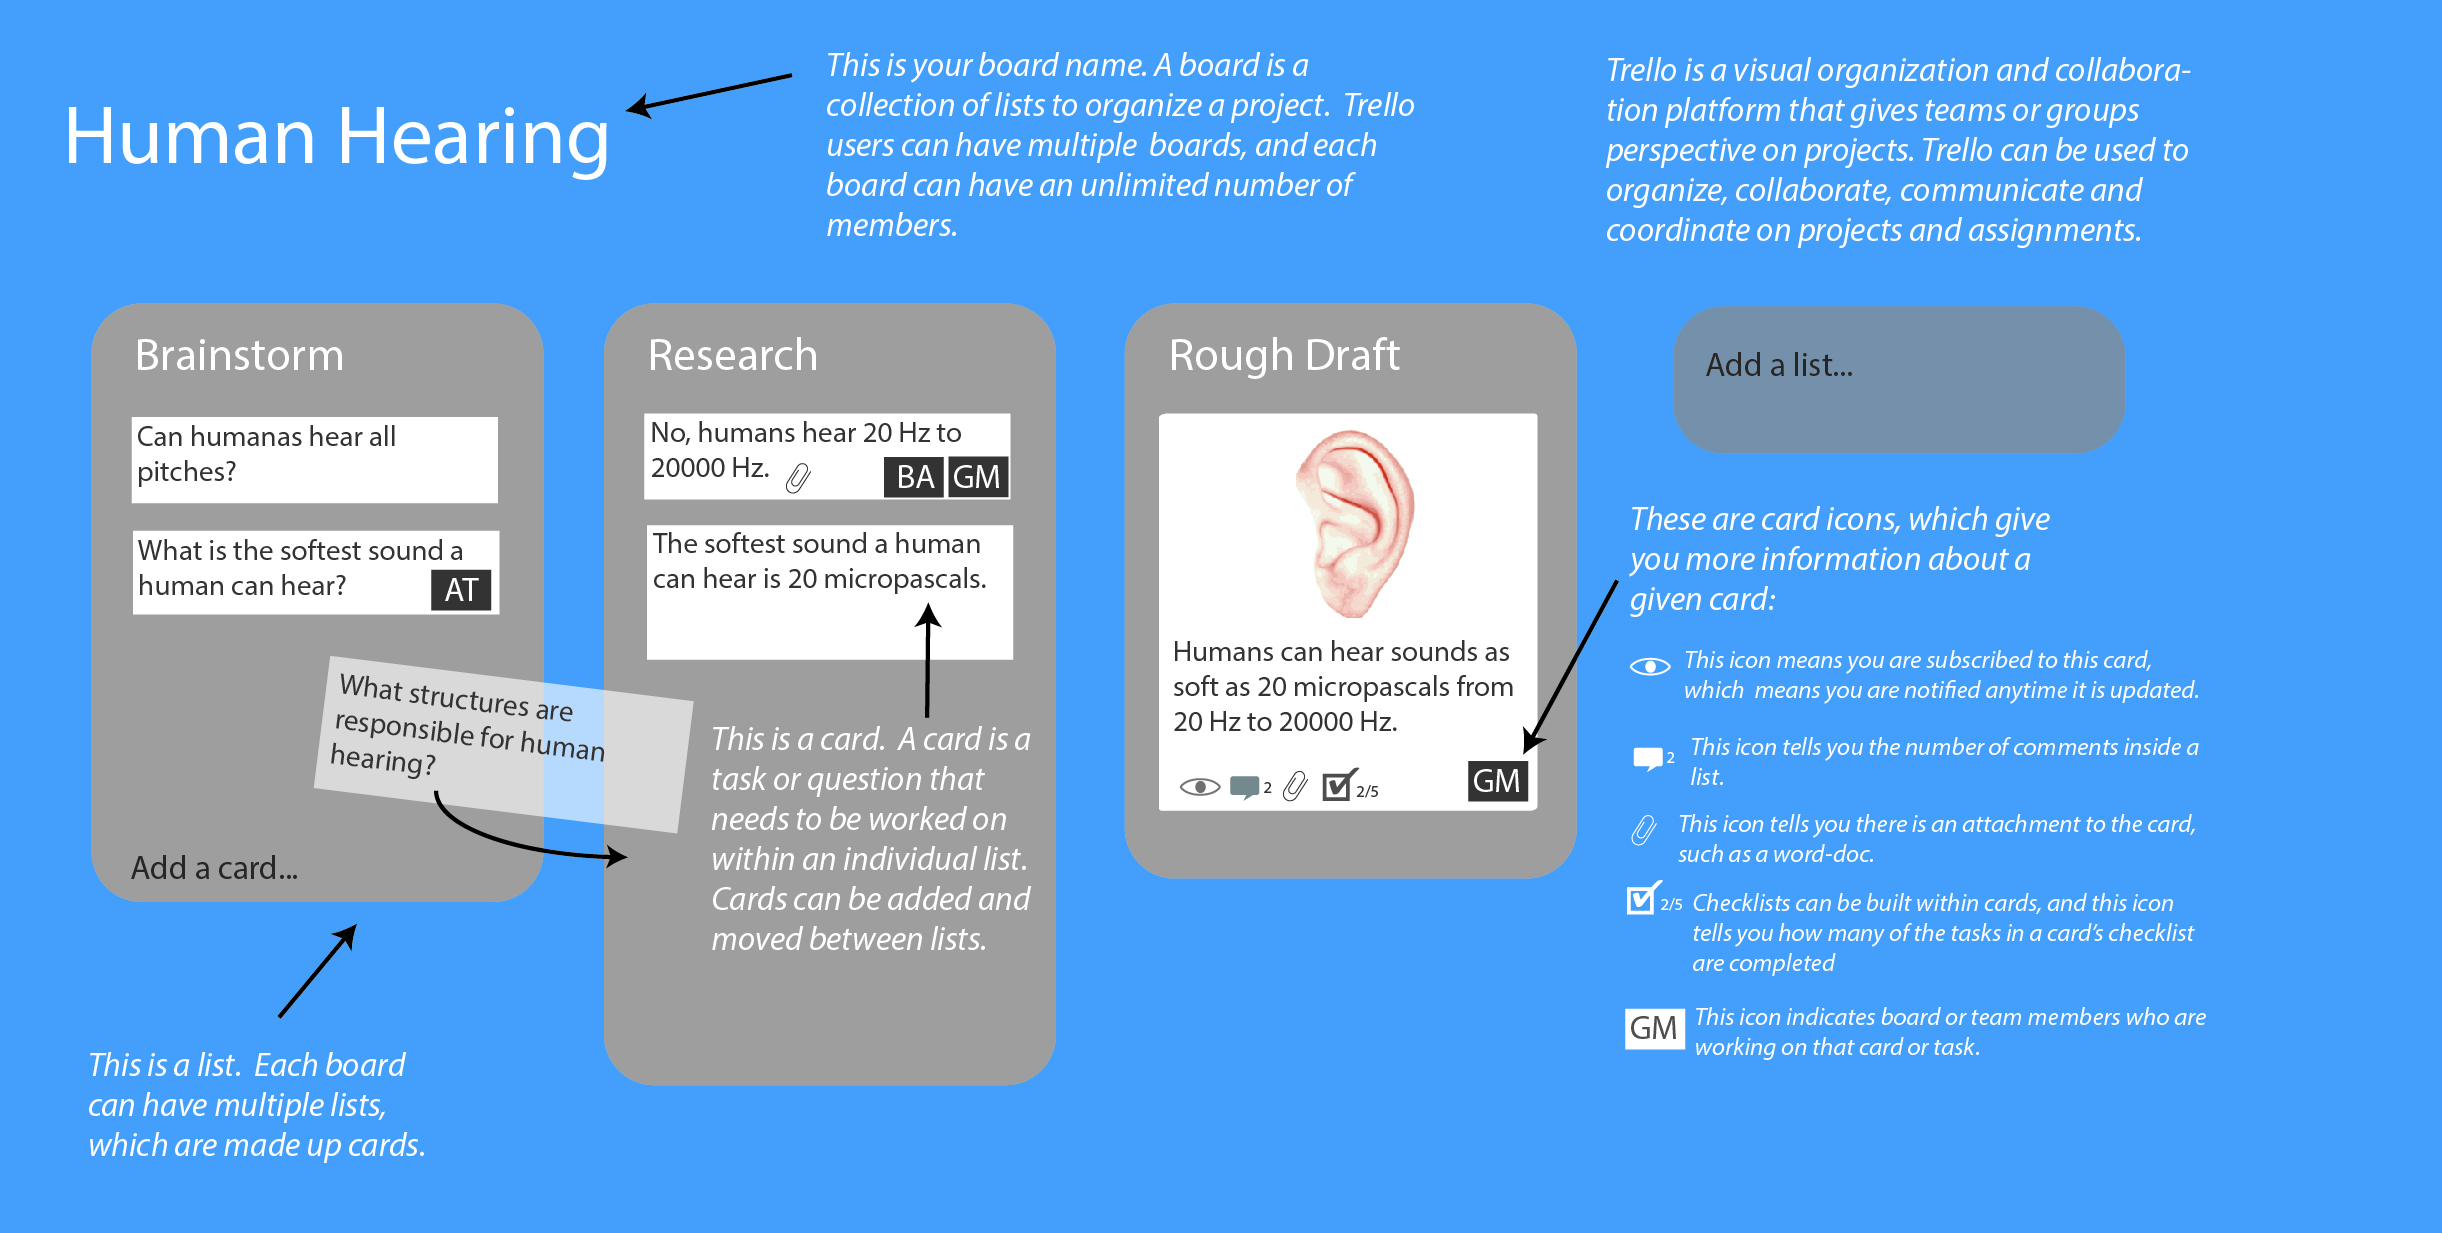 Infographic of Trello Board for Human Hearing. Has blue background with title, three gray rectangles for lists of brainstorm, research, and rough draft, which contain sample cards in white with text.